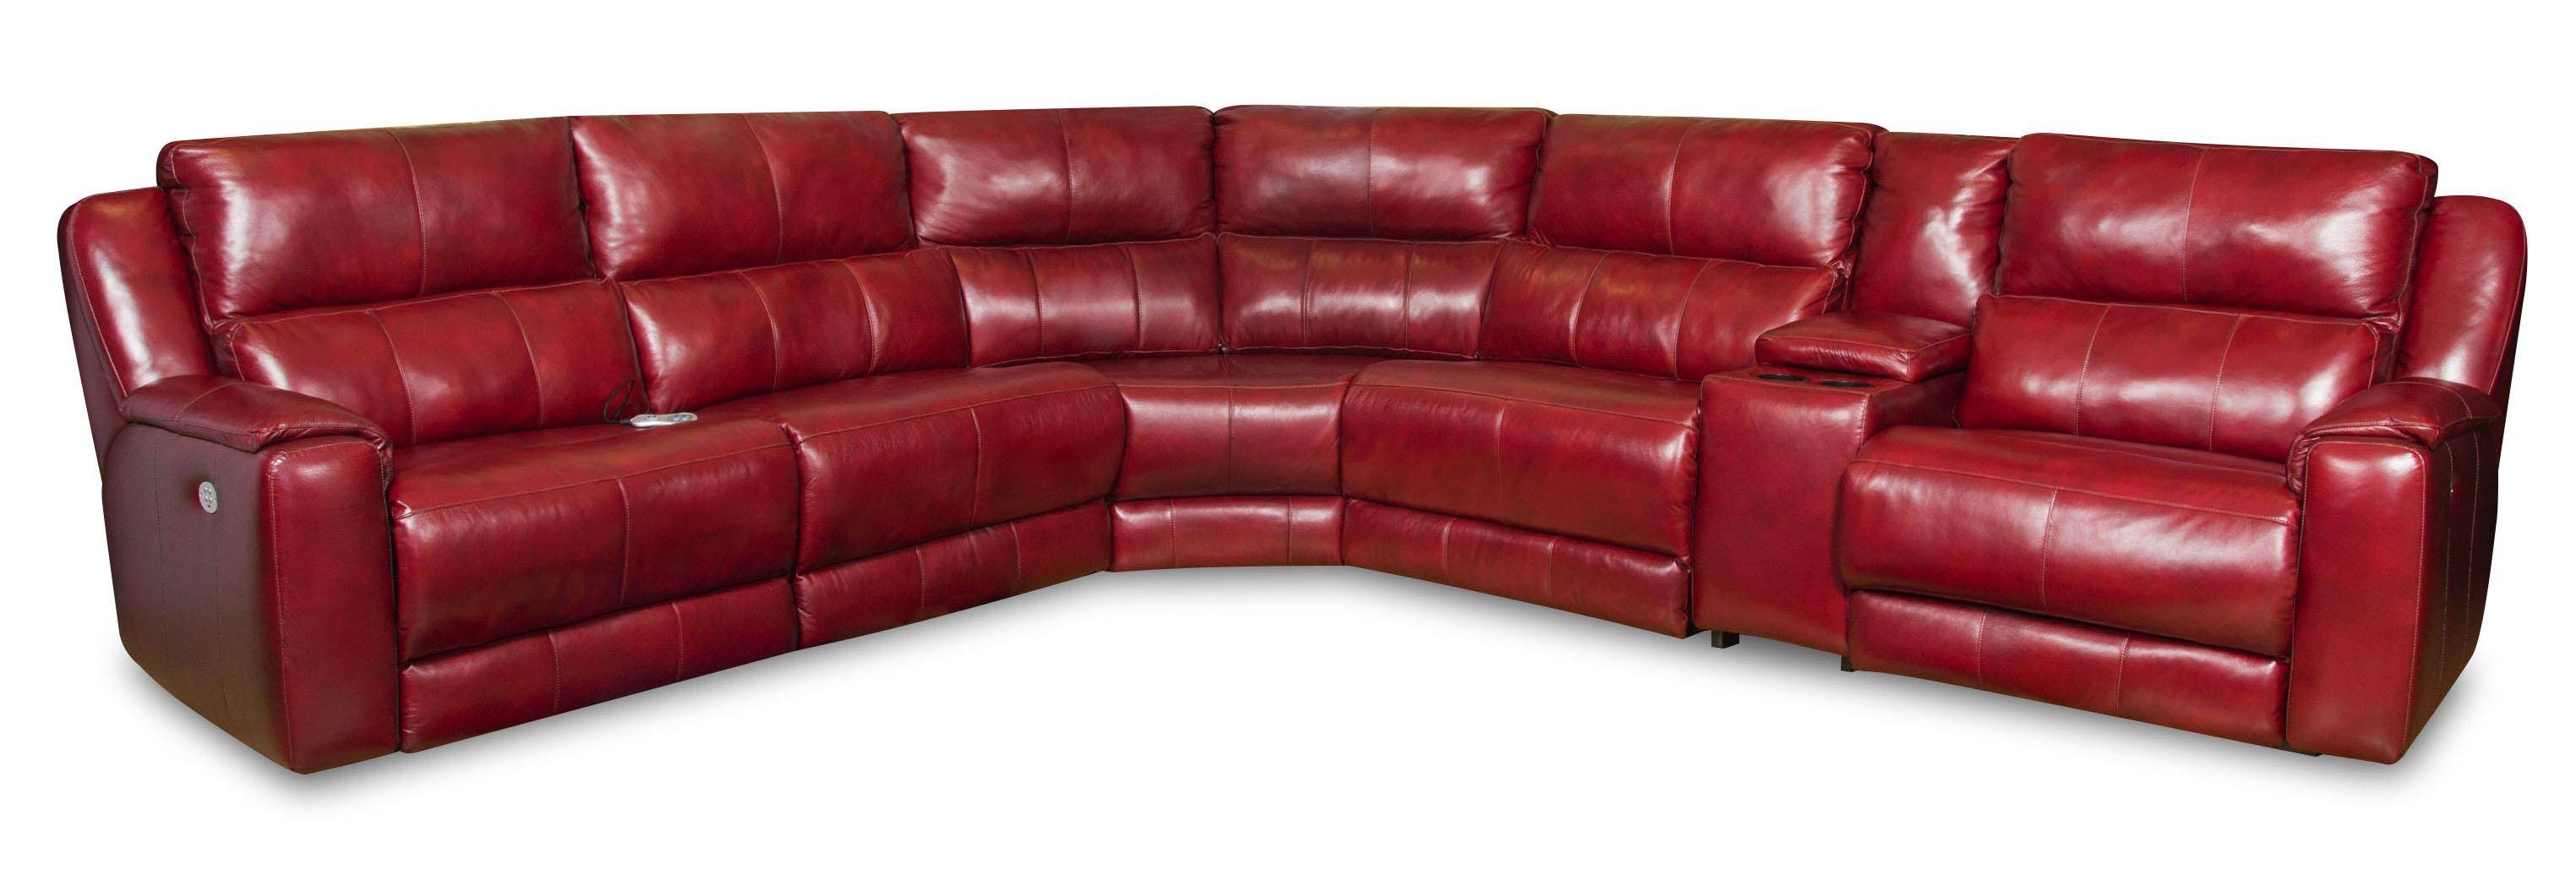 motion sofas leather mini for toddlers top 25 of sectional sofa